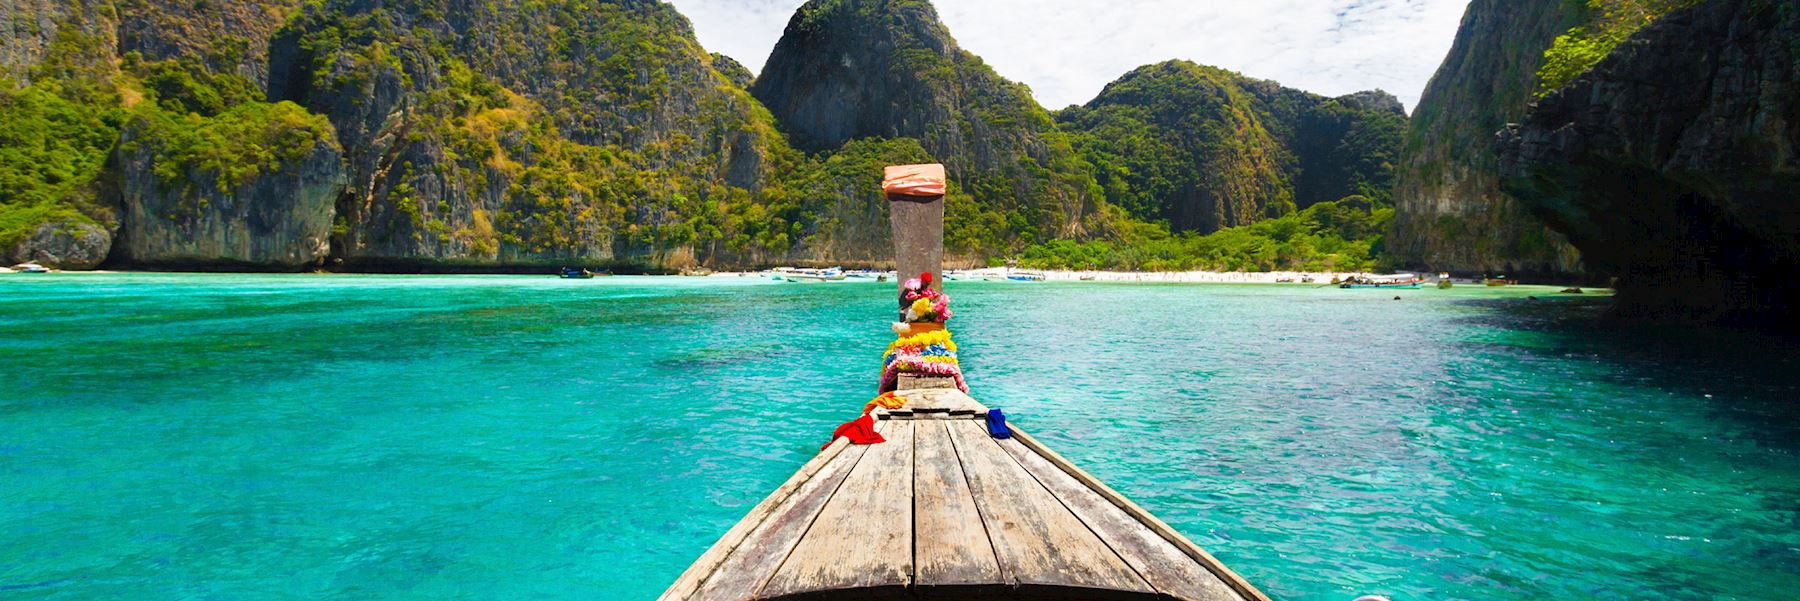 Thailand Itinerary Ideas Audley Travel